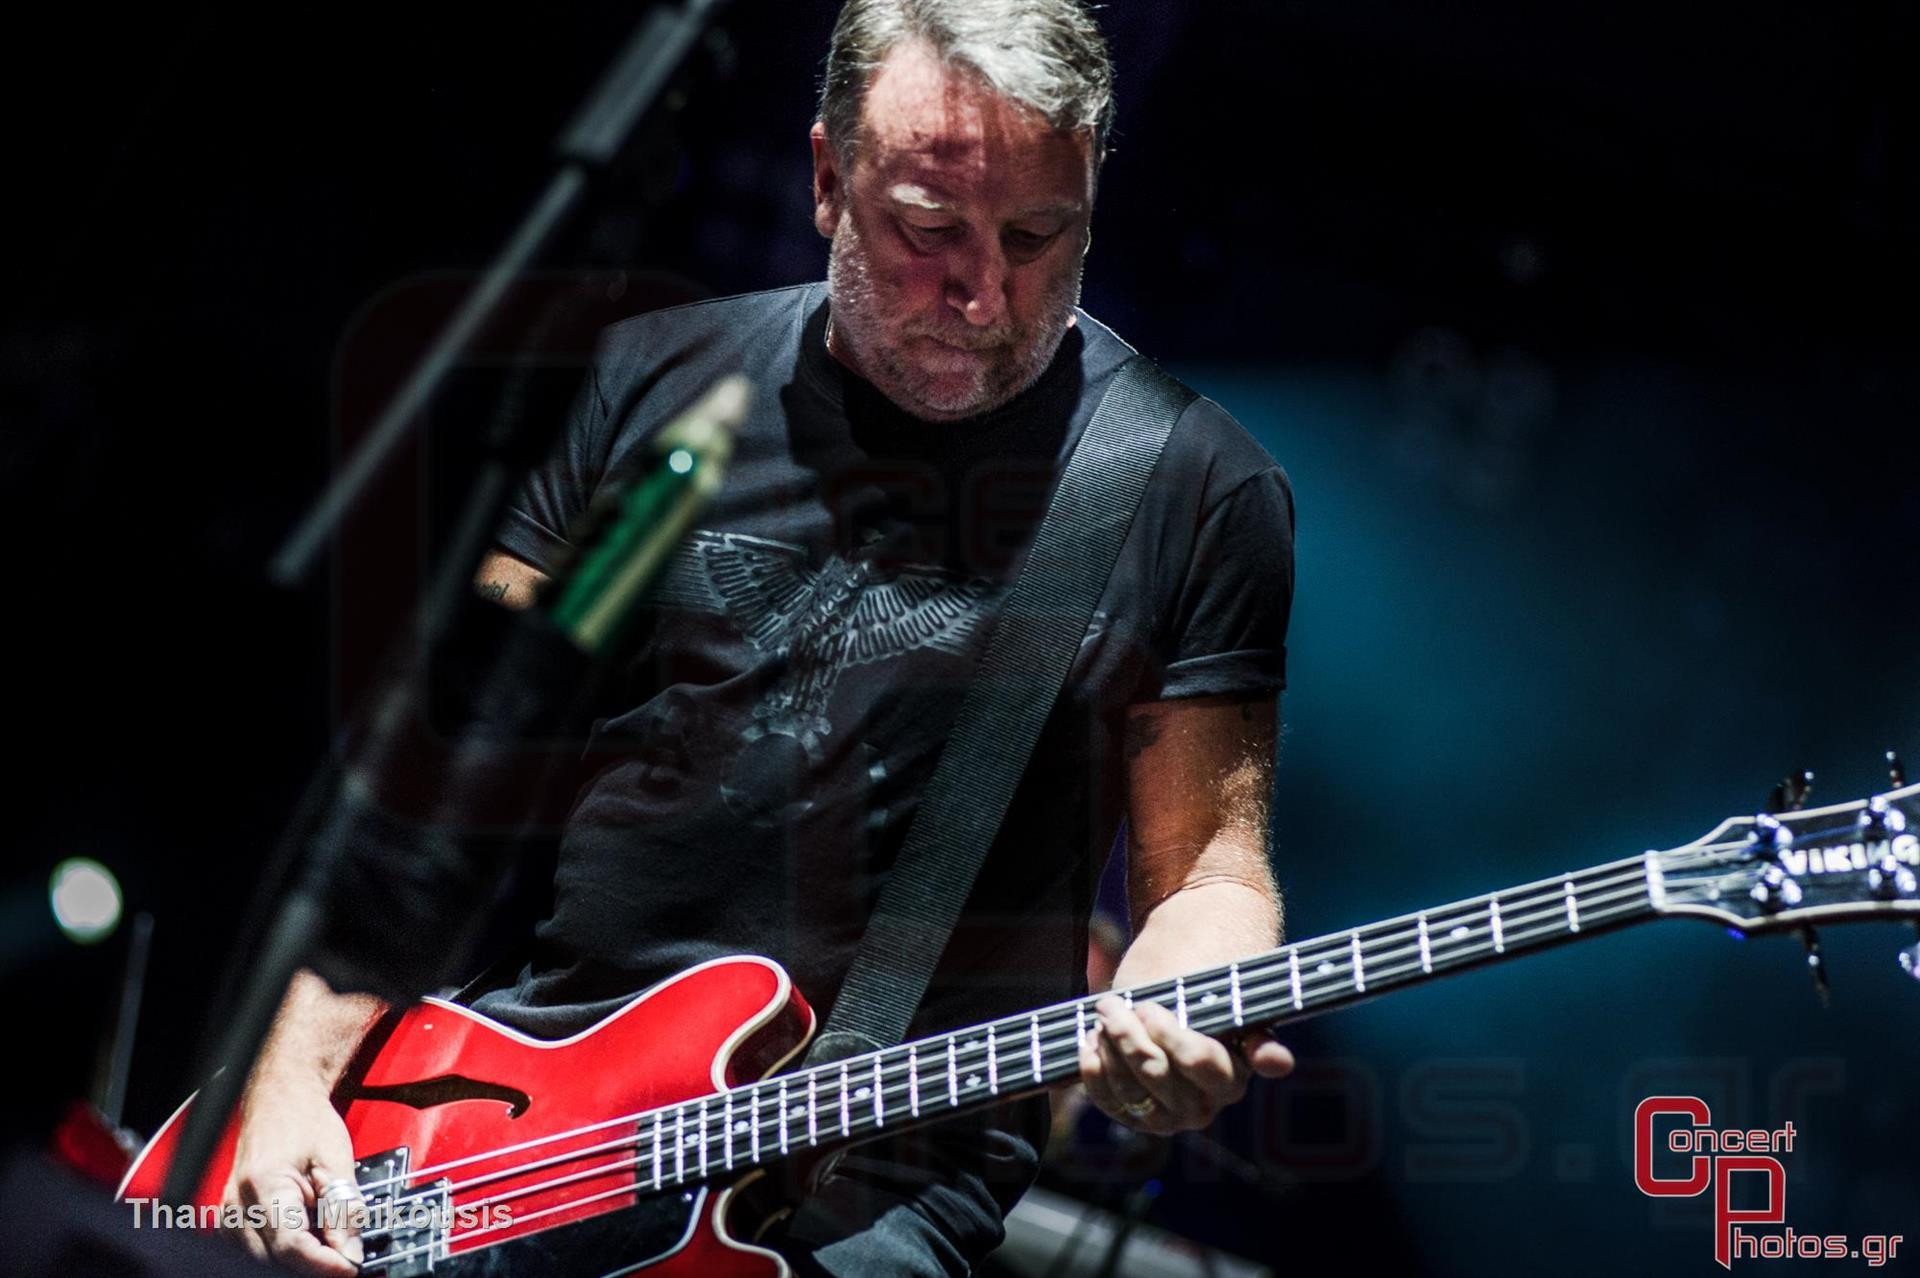 Peter Hook & The Light -Peter Hook & The Light Ejekt 2013 photographer: Thanasis Maikousis - concertphotos_-9268